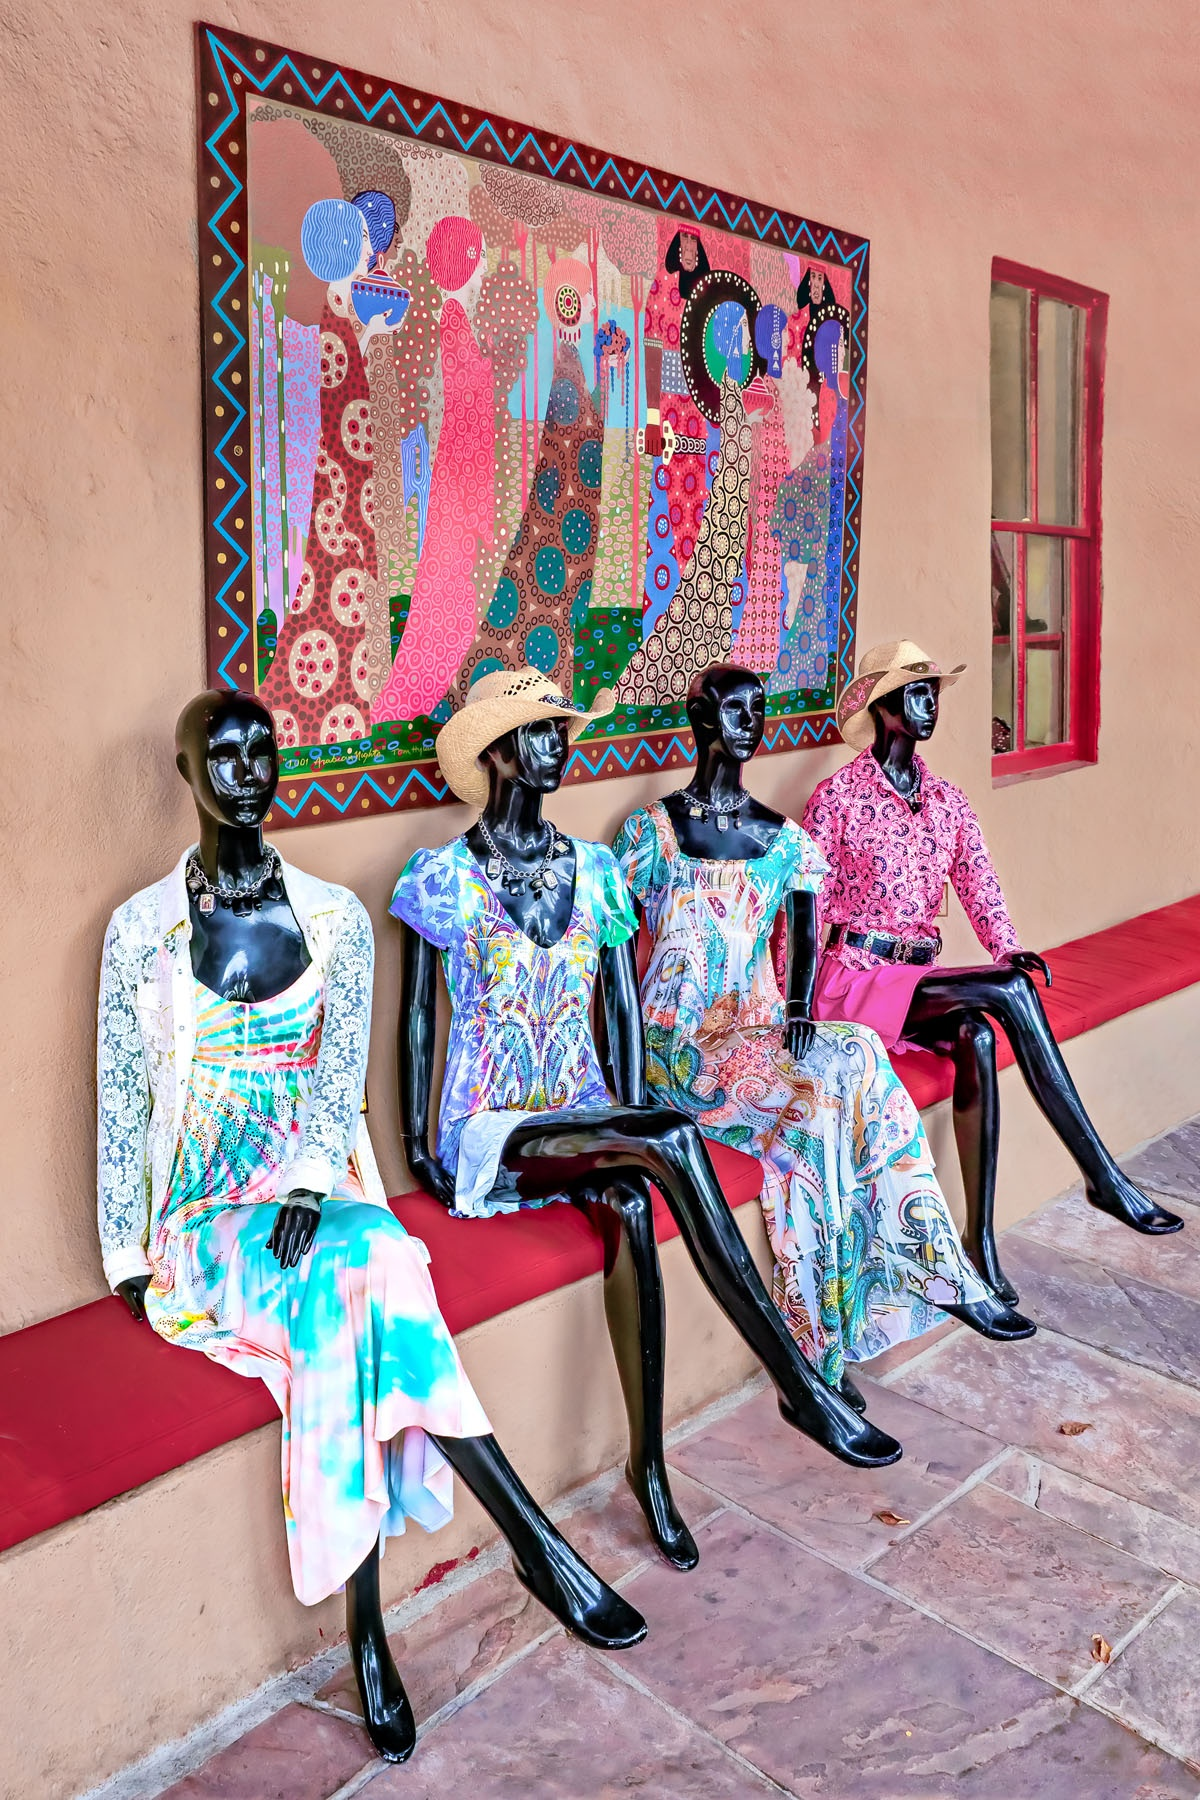 CLASSY LADIES - My wife and I stopped at a streetside cafe in Santa Fe. Next door was a ladies apparel/jewelry store. These ladies were adorned with inventory from that shop. They graciously posed for this photo.